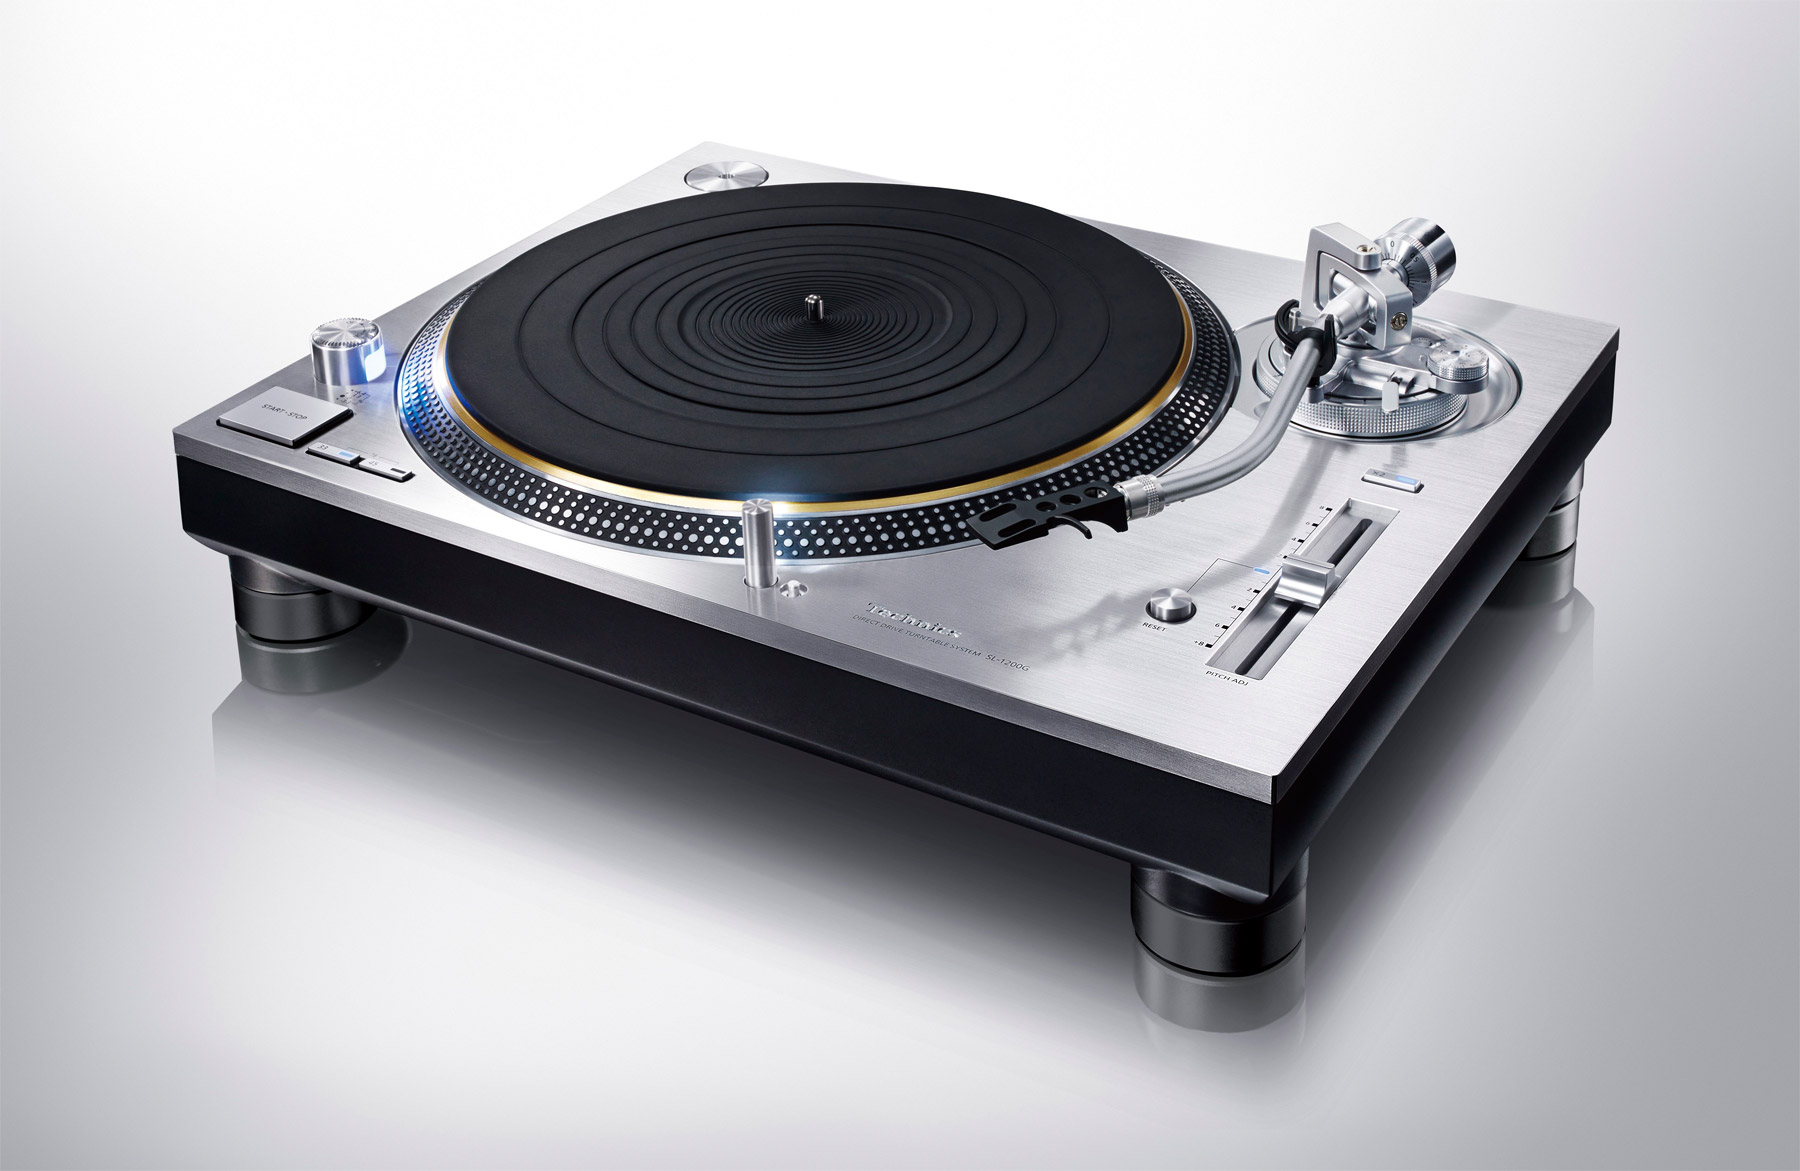 The Technics Grand Class Direct Drive Turntable System SL-1200G